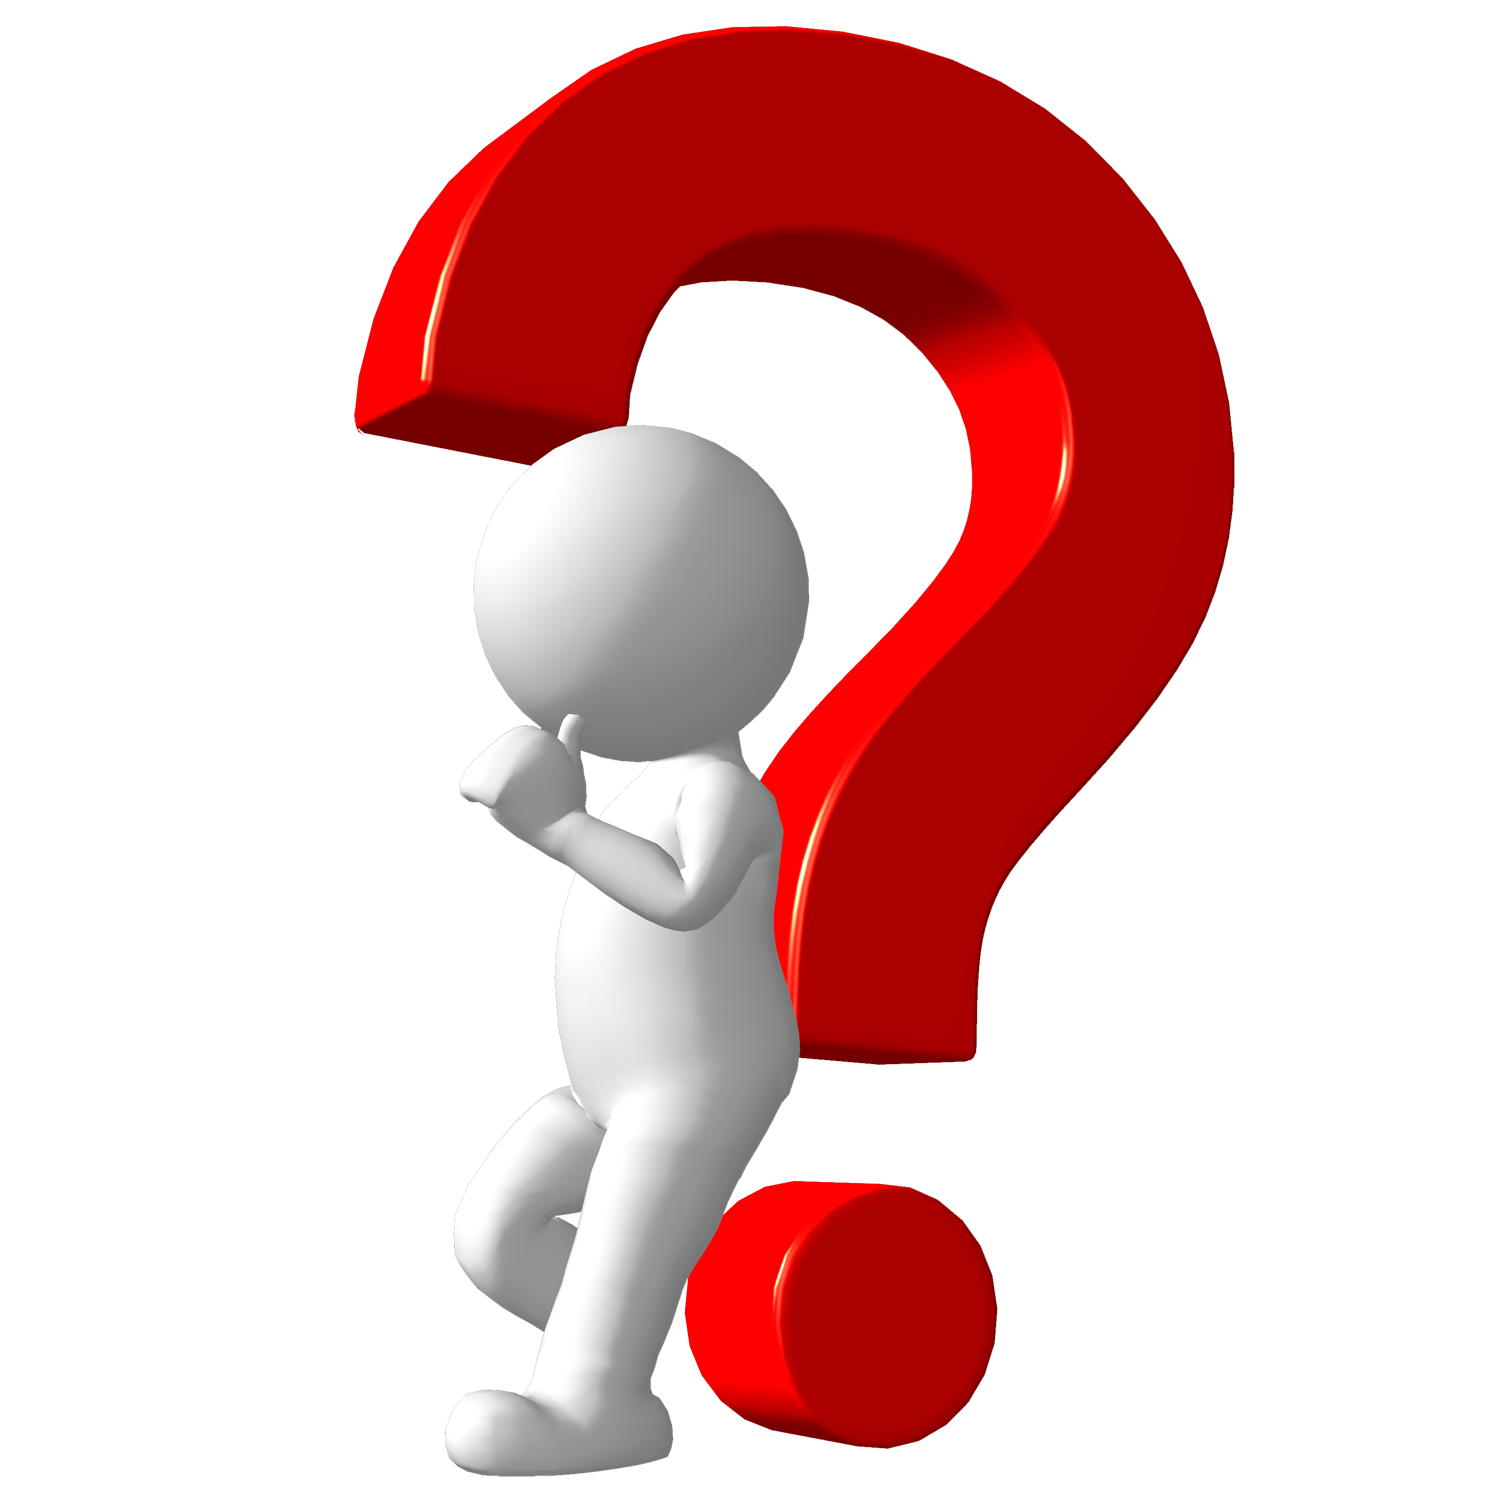 clipart question guy - photo #43